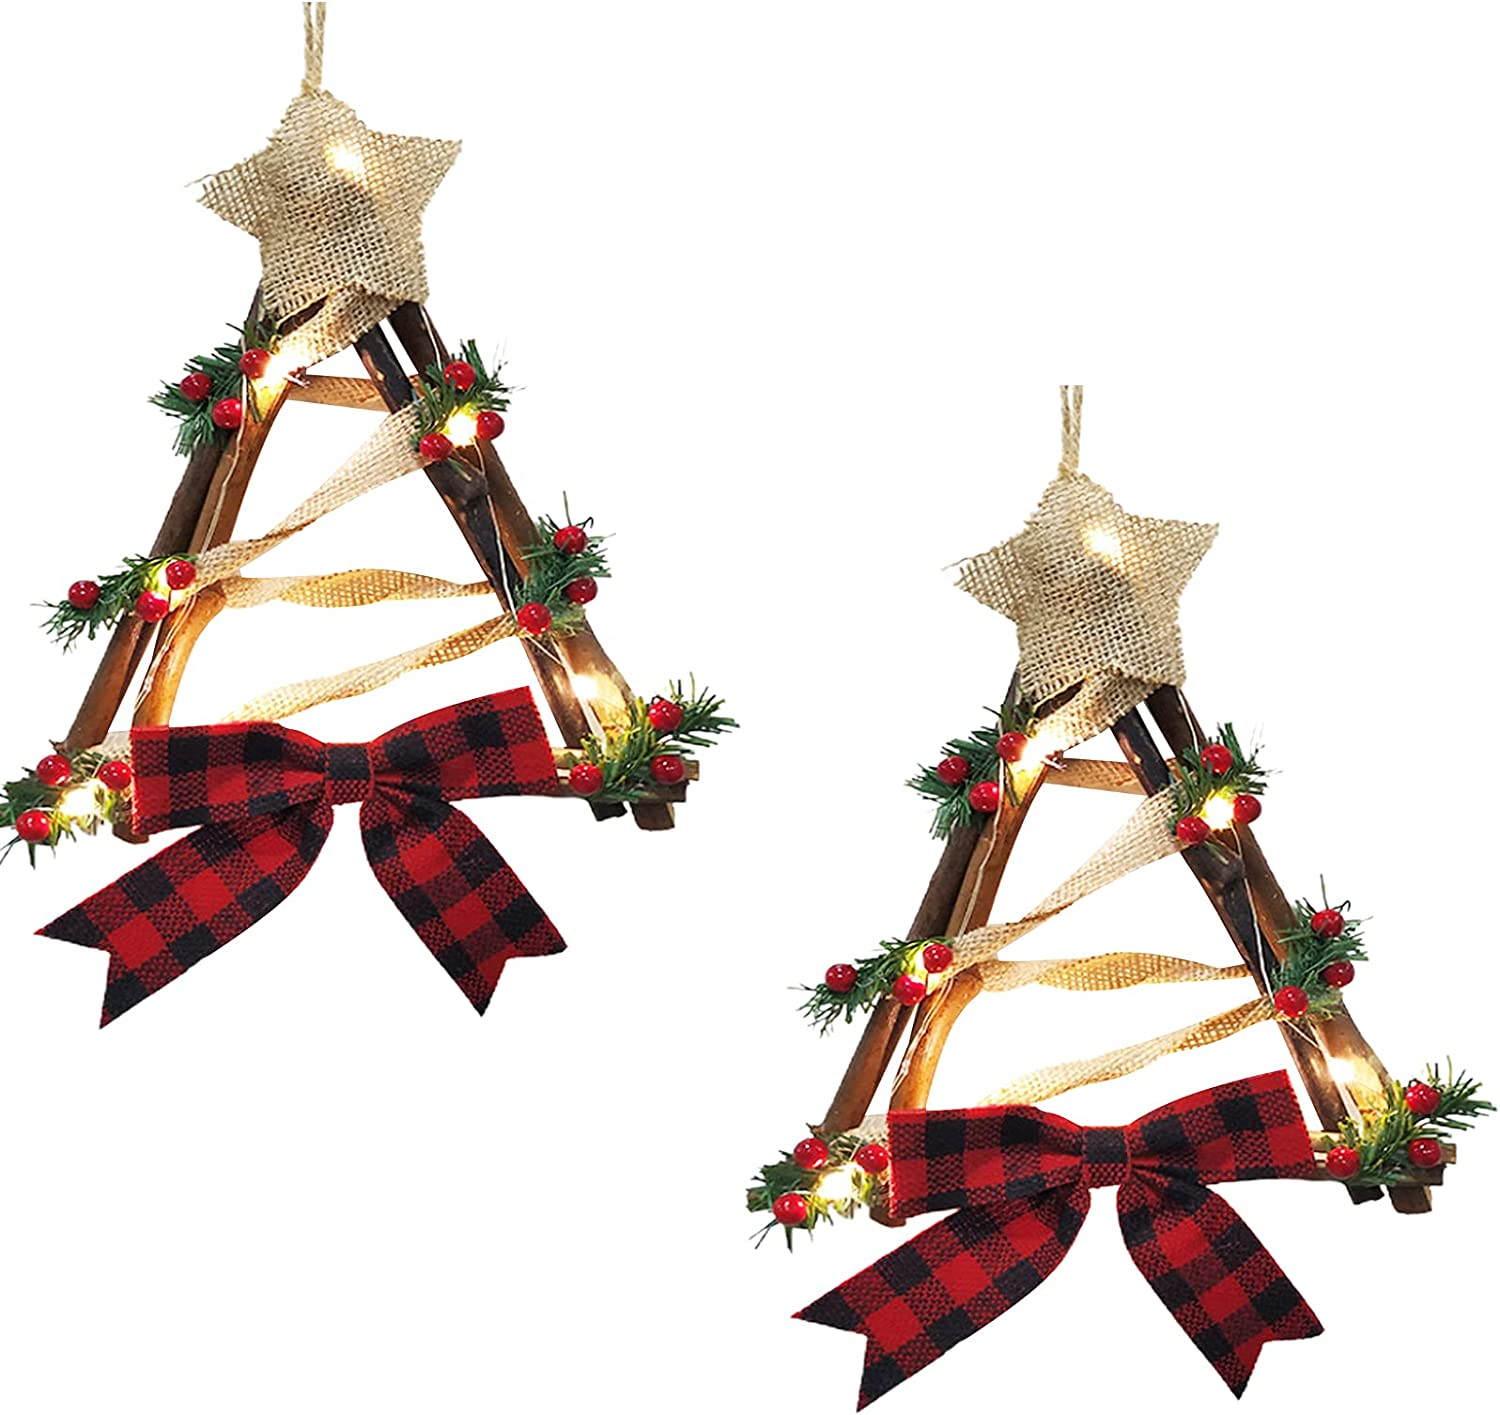 Mokyler Cheap mail order shopping discount 2 PCS Christmas Wreath Bow Rattan Ornaments Red Triangle